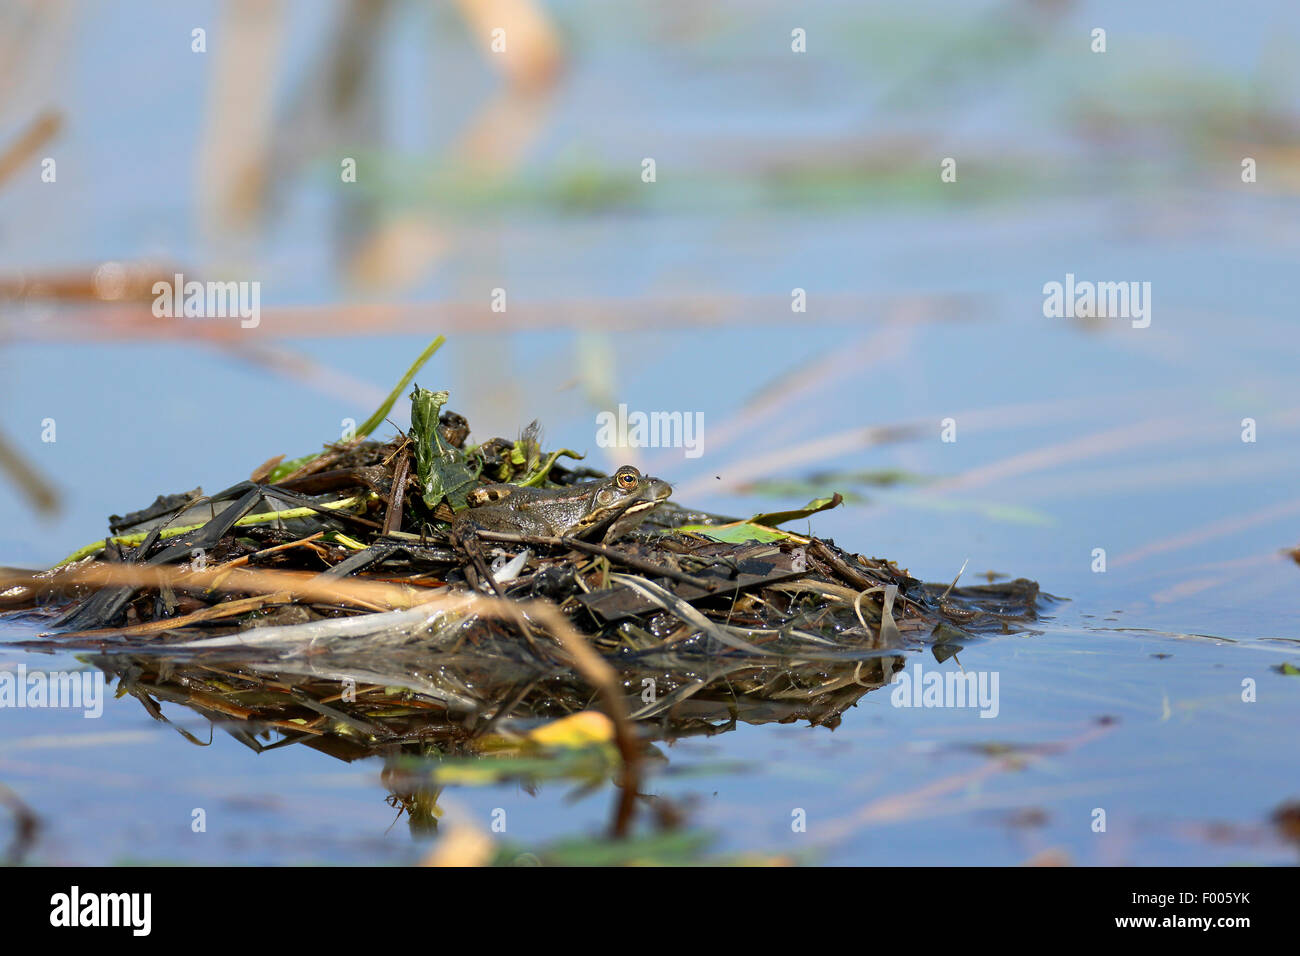 marsh frog, lake frog (Rana ridibunda, Pelophylax ridibundus), sits on the nest of a dabchick, Greece, Lake Kerkini - Stock Image